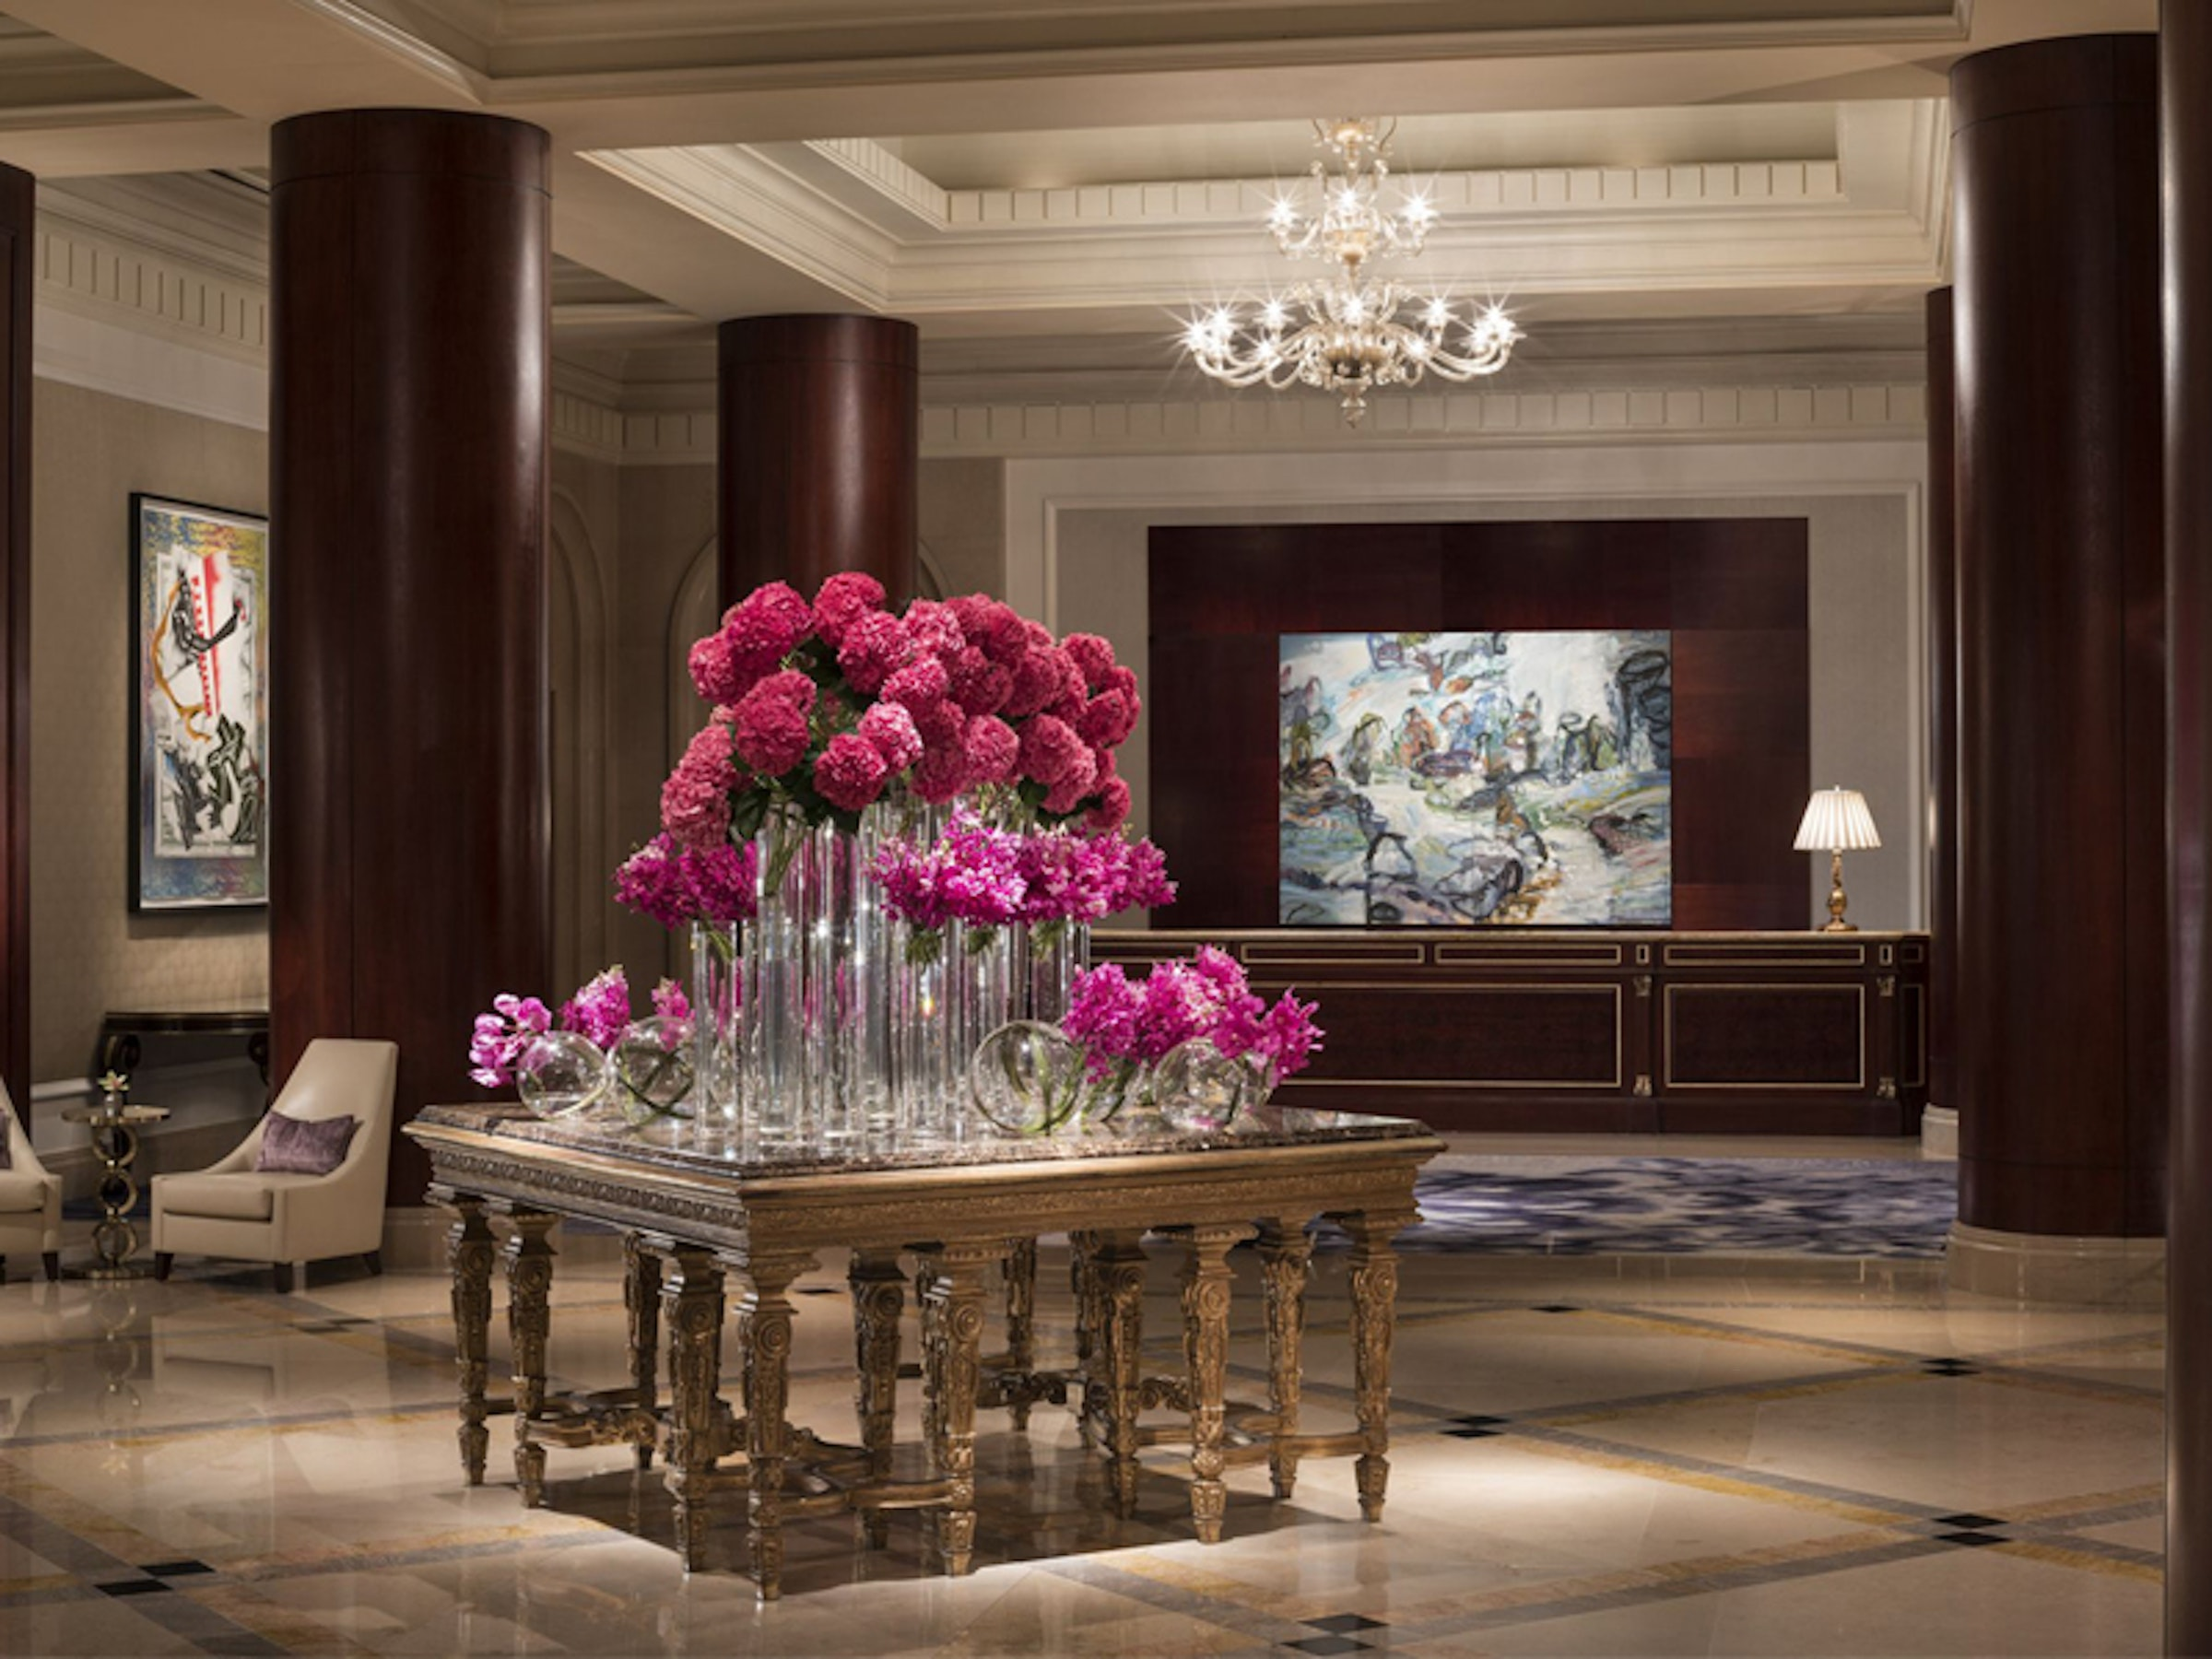 The Ritz-Carlton, Dallas in Beyond Dallas